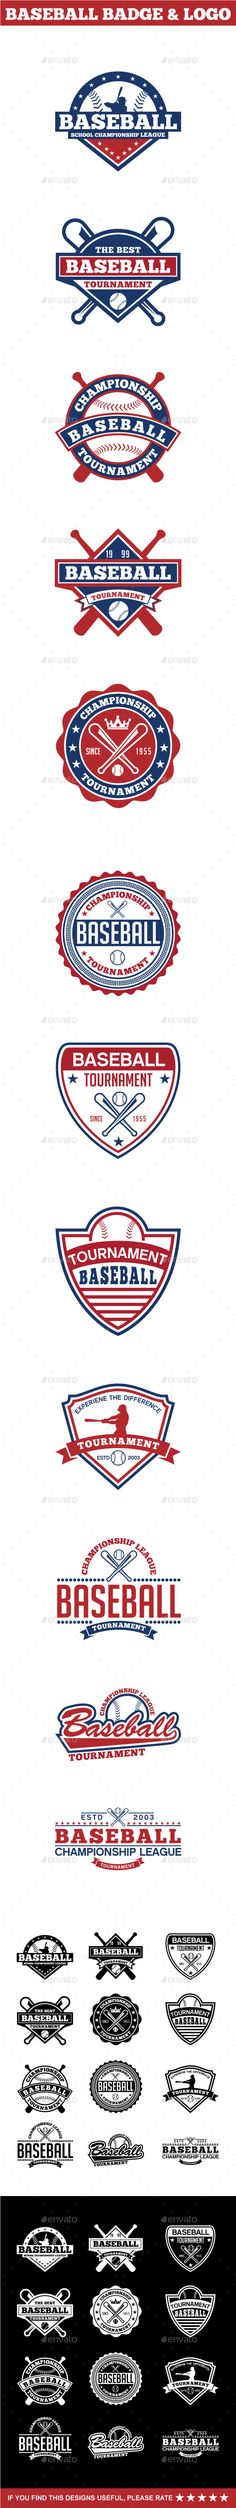 Baseball Badge & Logo #design Download: http://graphicriver.net/item/baseball-badge-logo-2/12601454?ref=ksioks